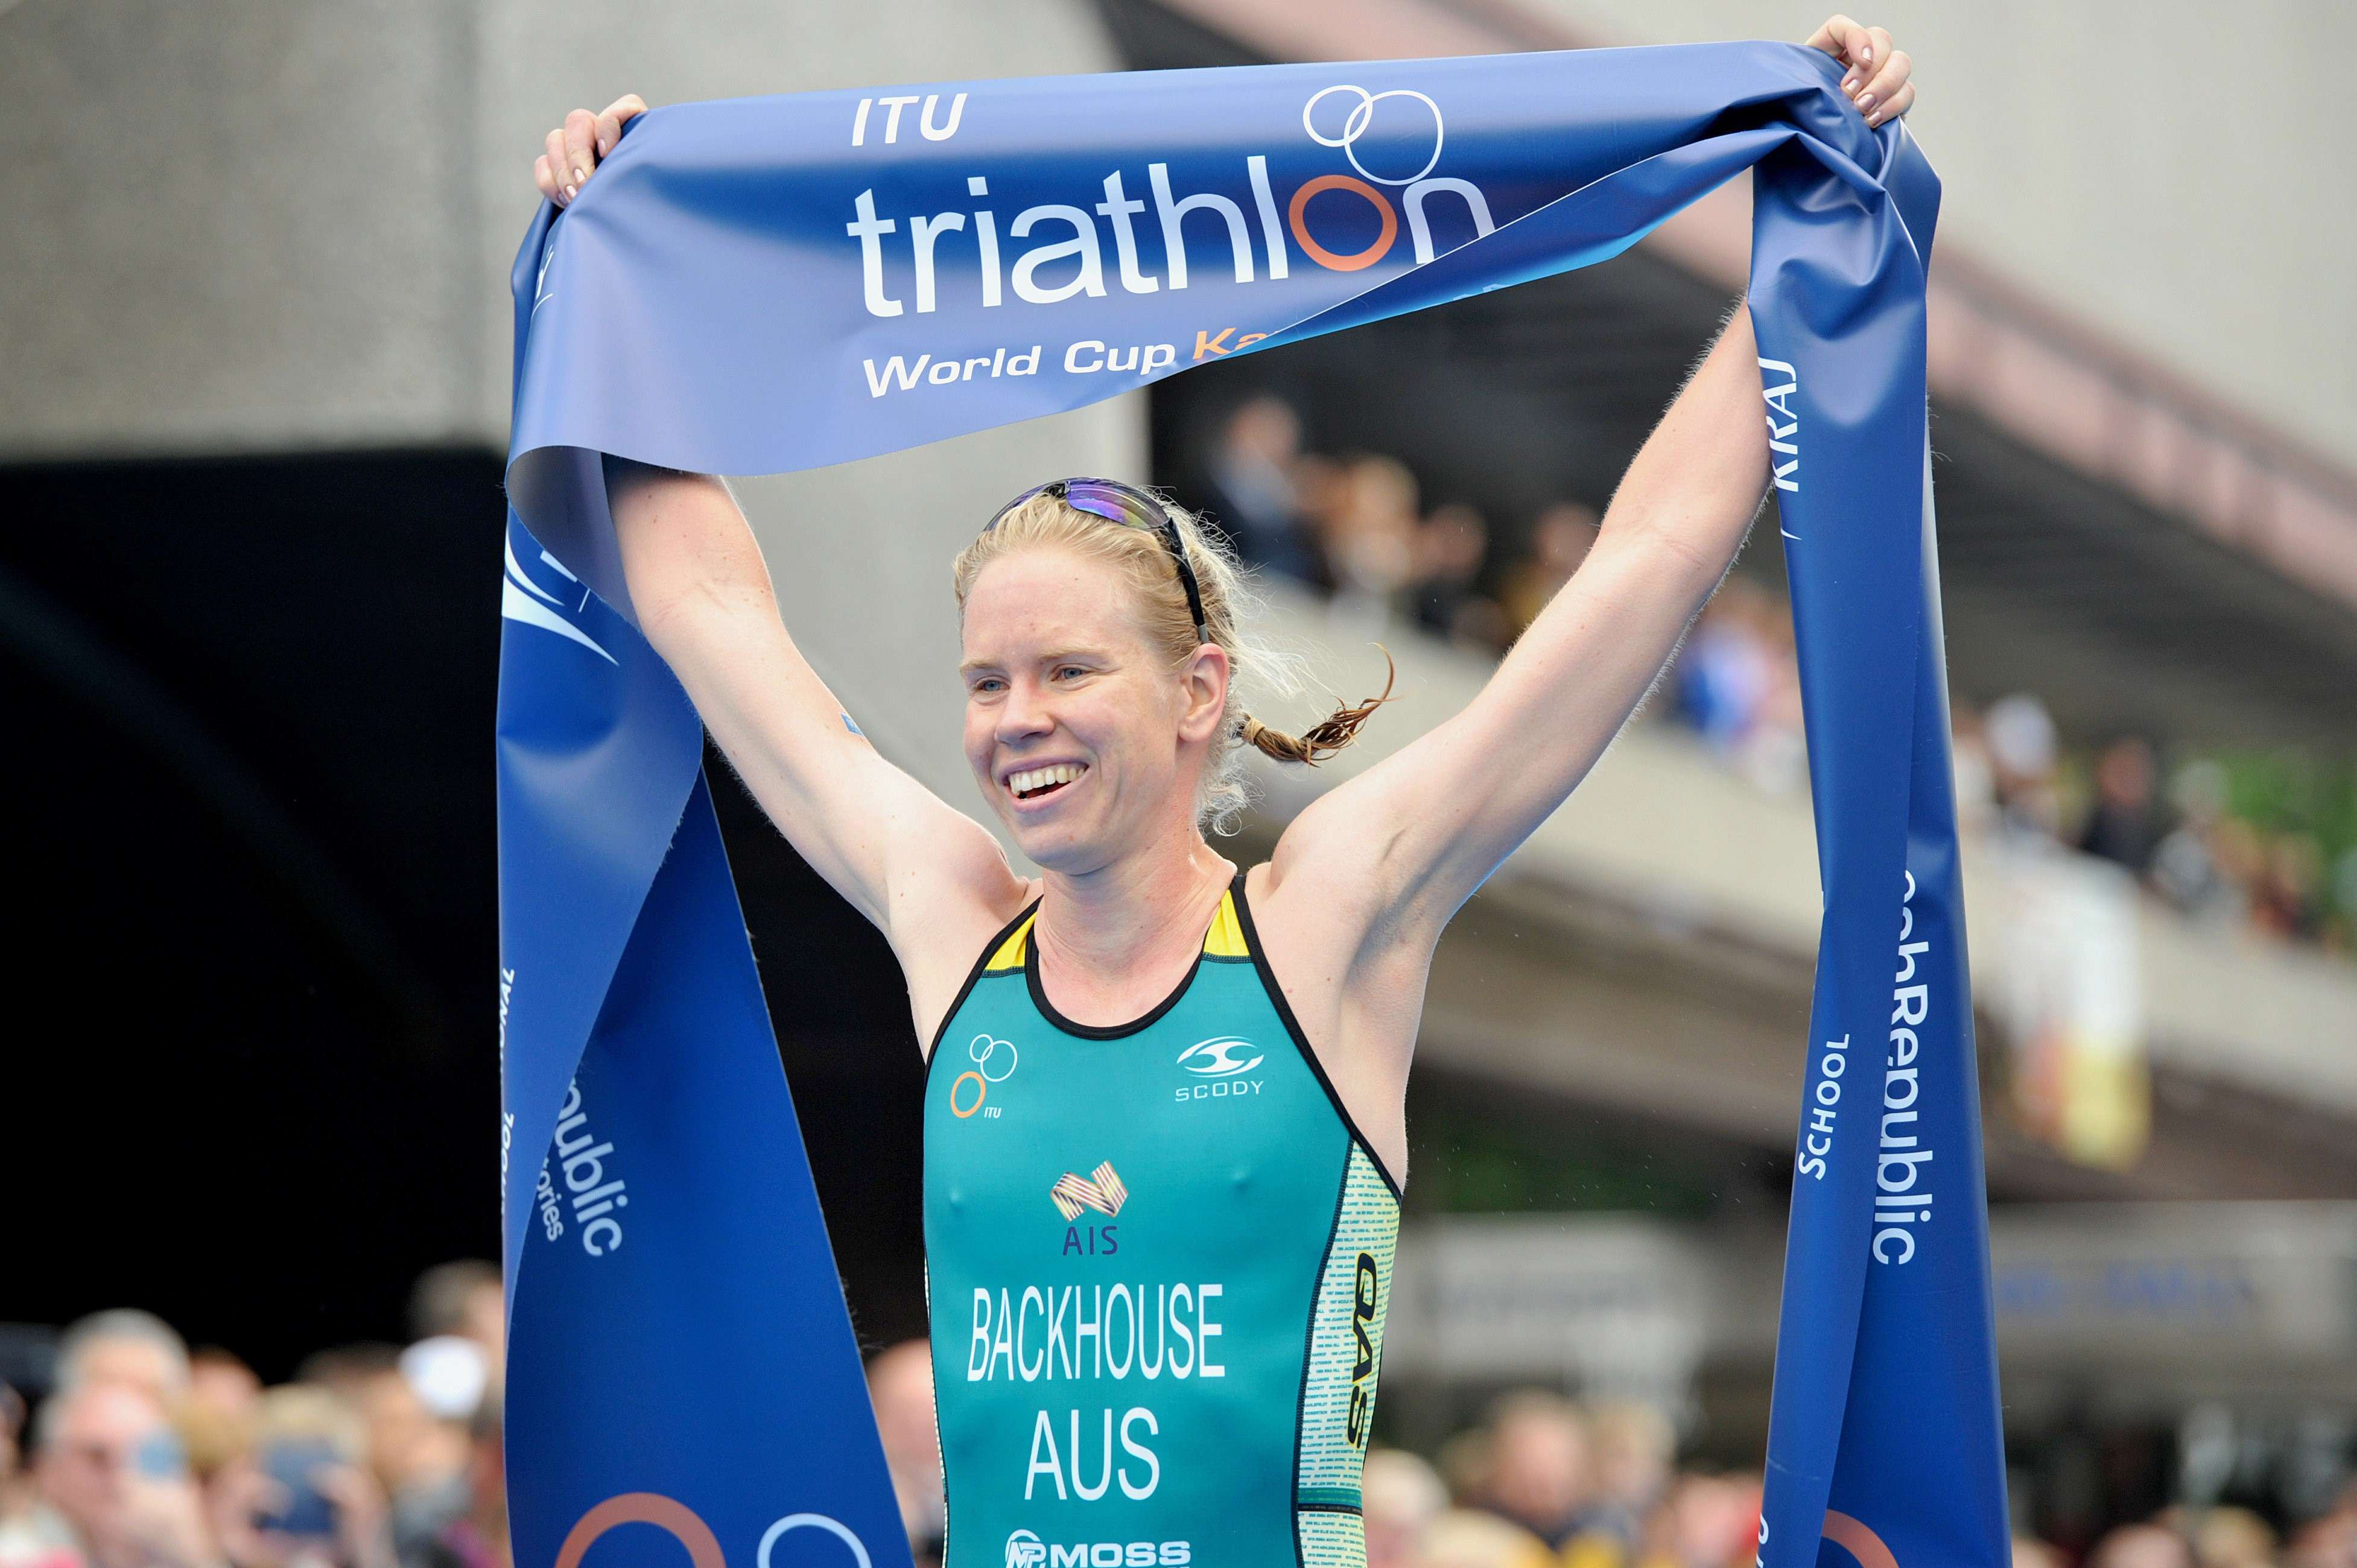 Gillian Backhouse - ITU Karlovy Vary Triathlon World Cup